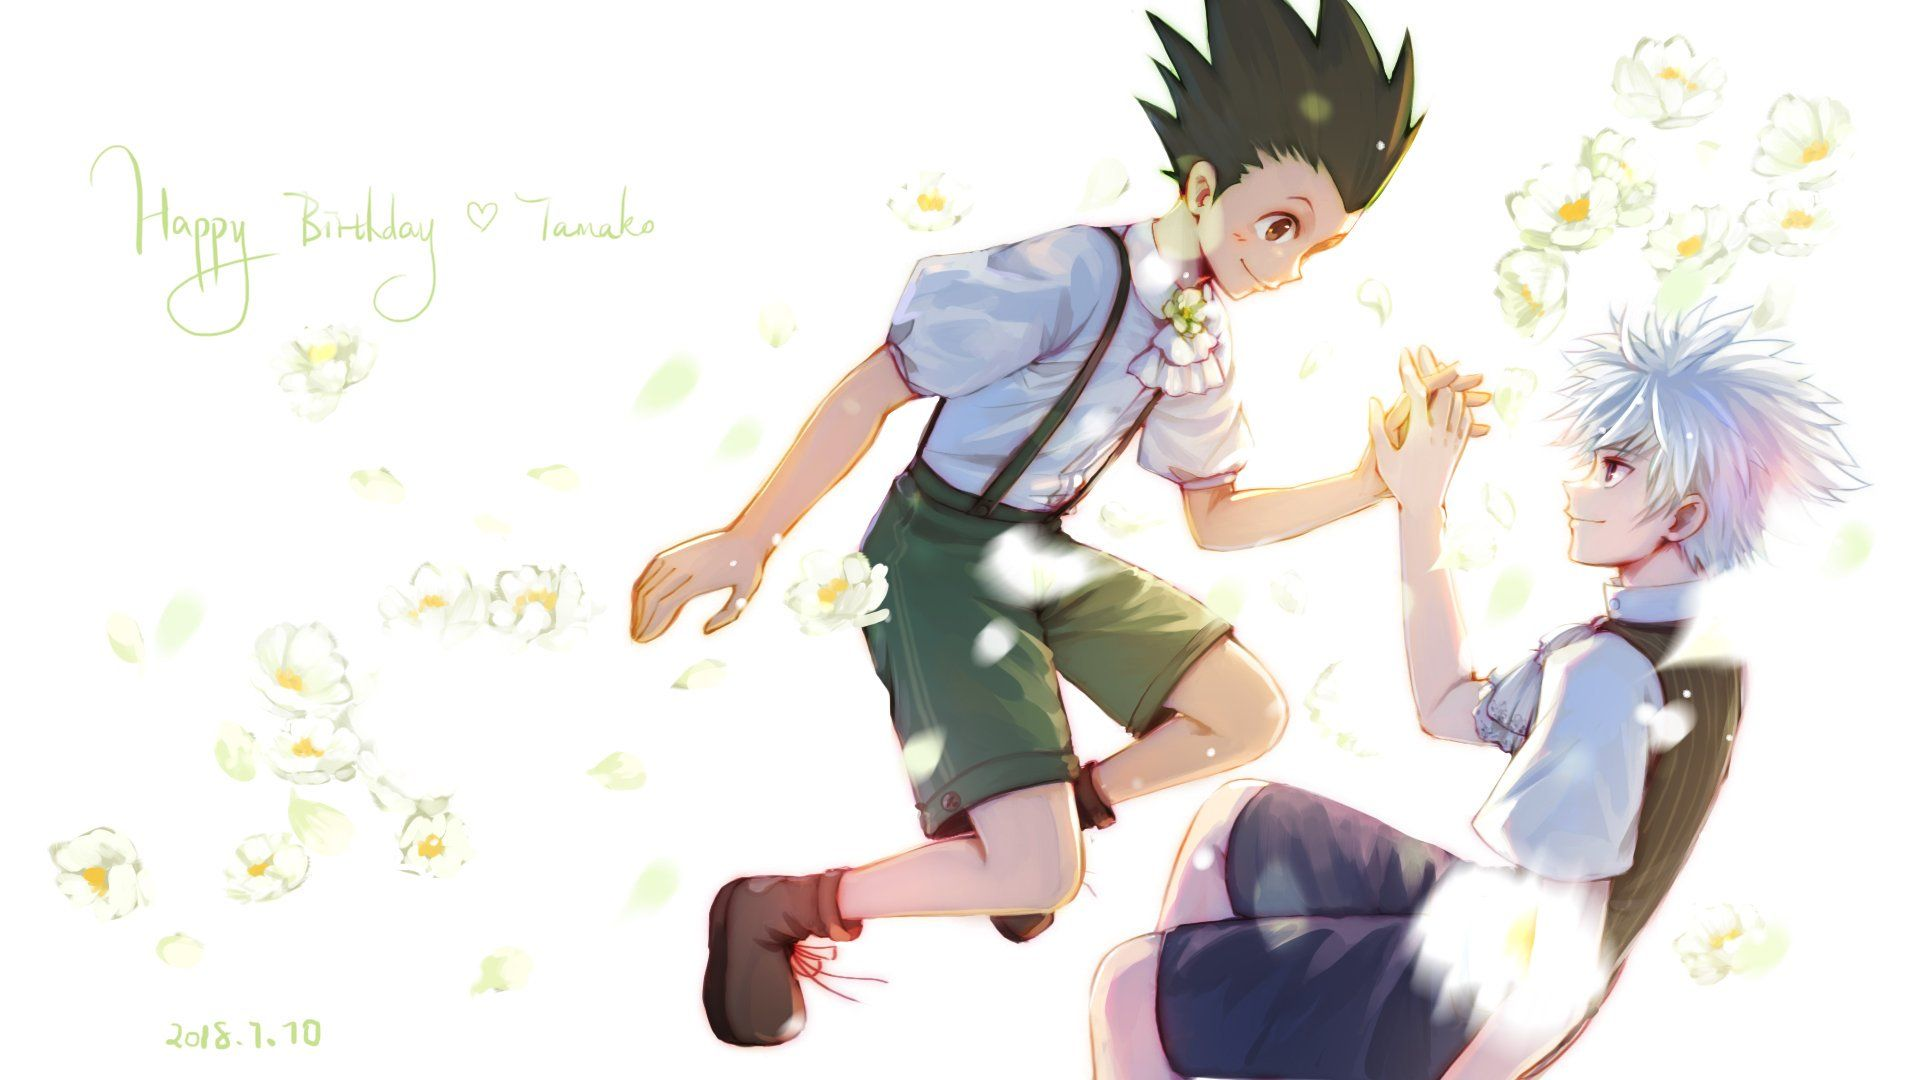 Pin By Killua 001 On Killugon Gonkillu Art Anime Hunter X Hunter